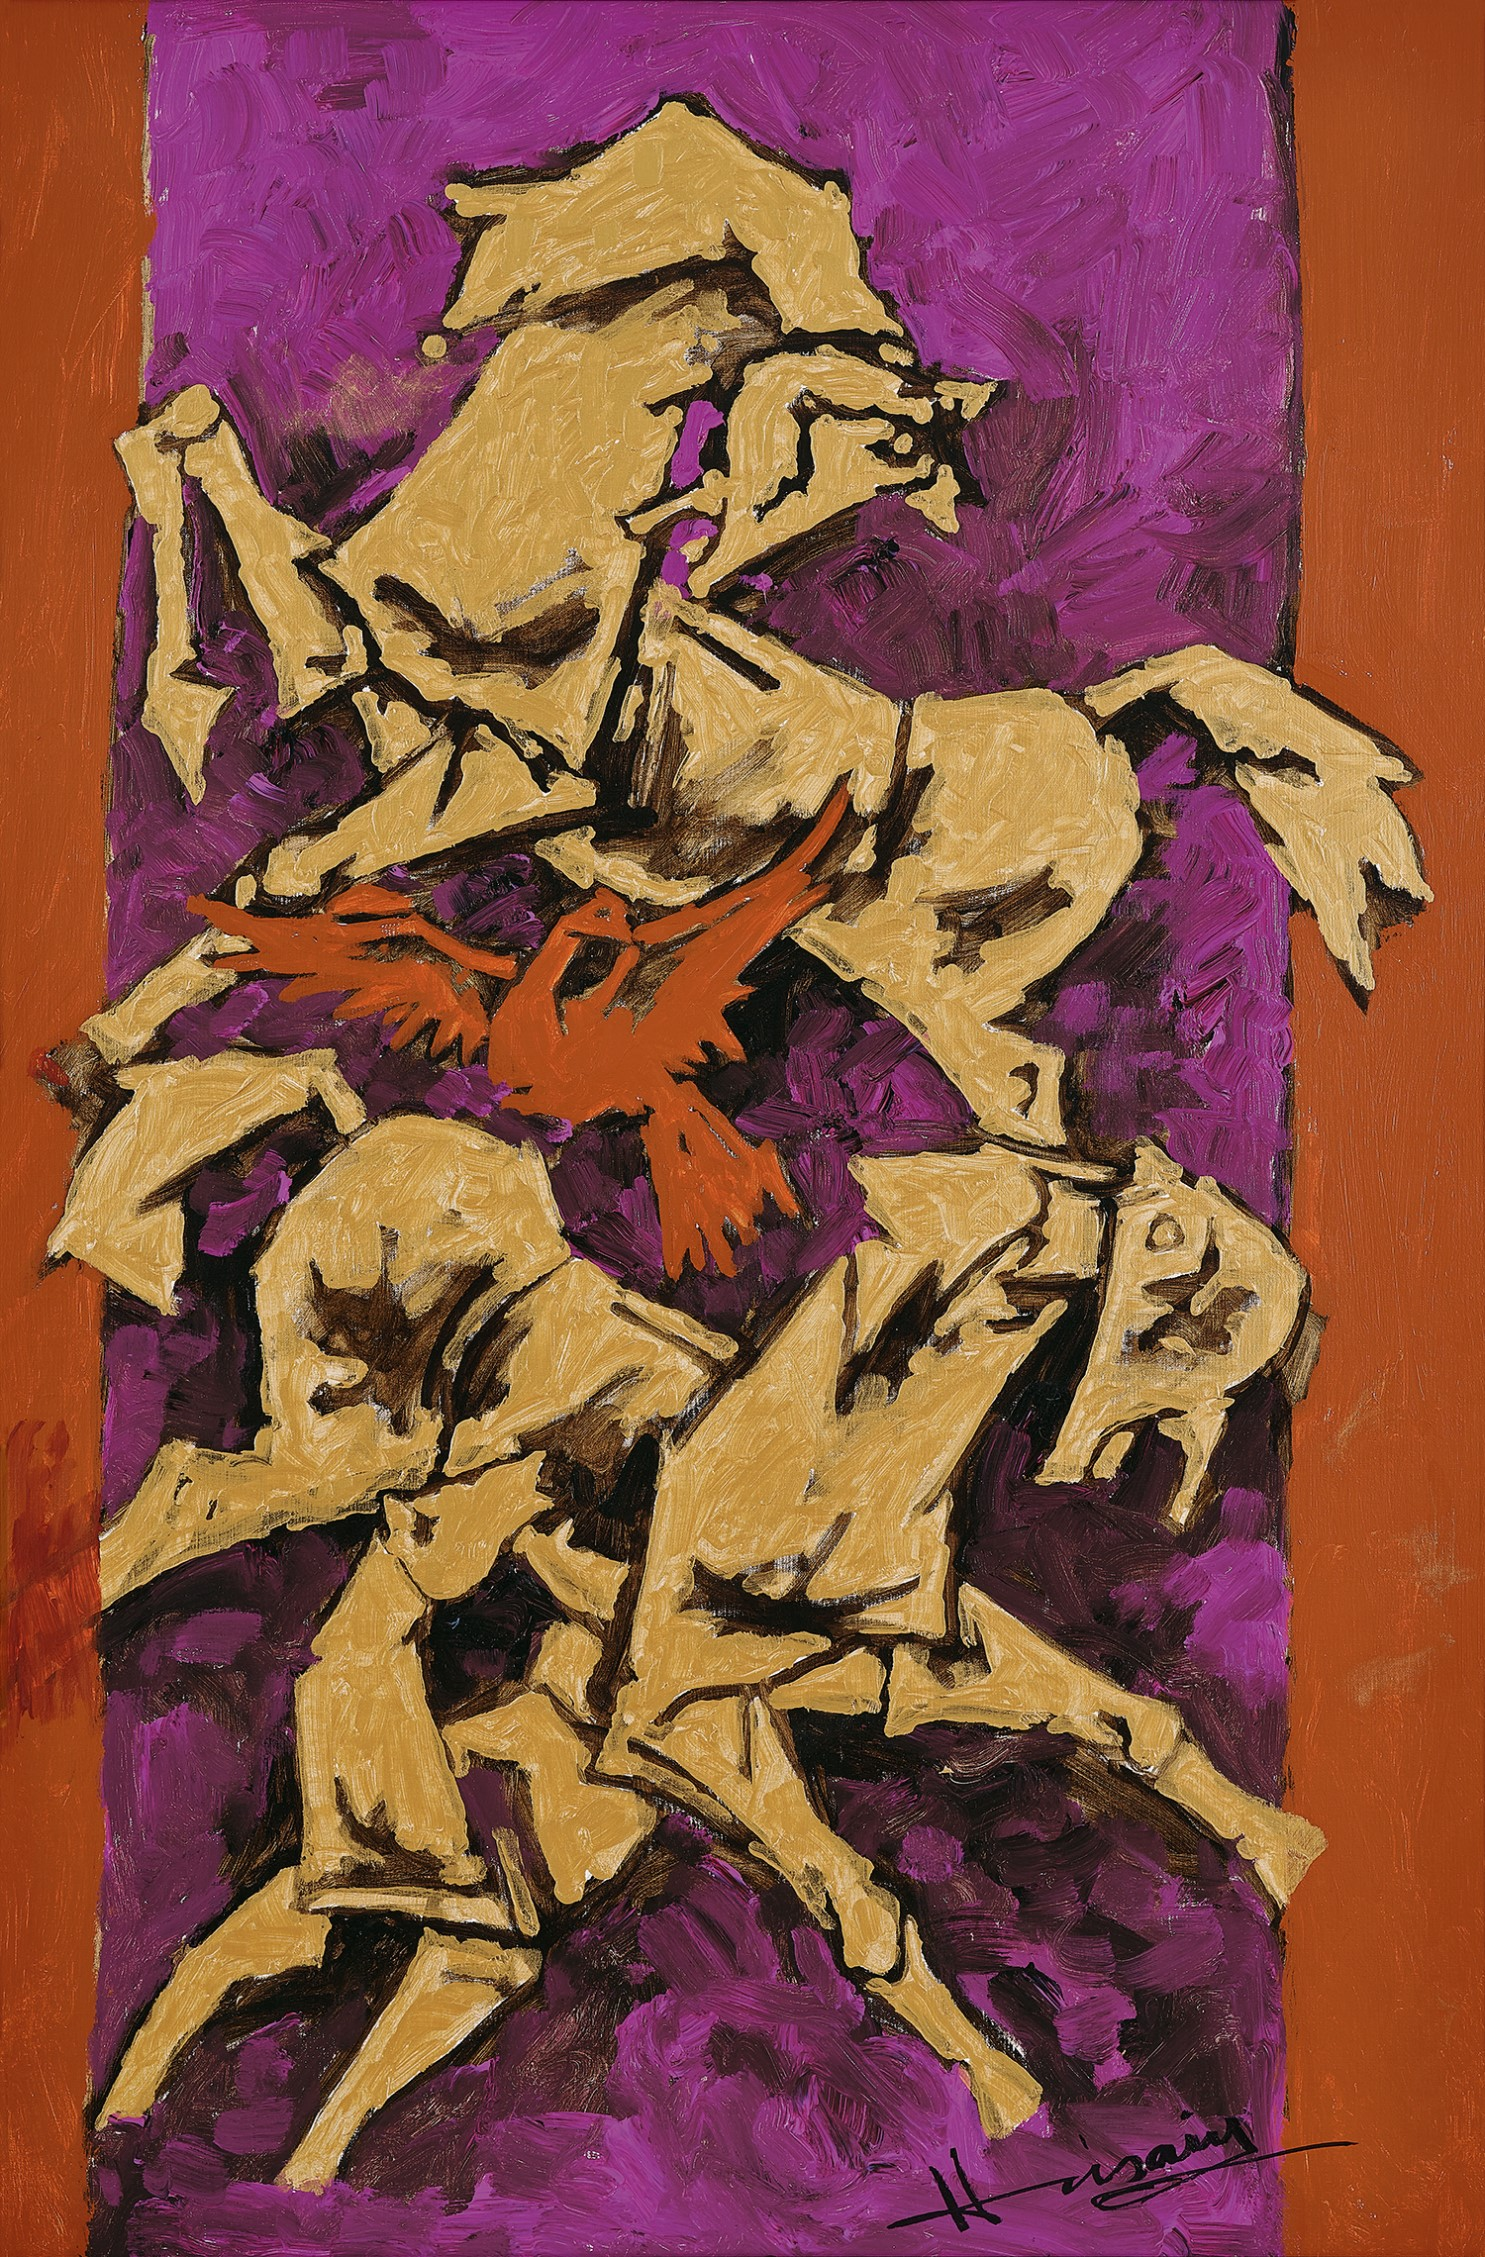 AstaG Lot 40 Husain, Untitled (Horses) circa 1990, Winning Bid - INR 1,64,38,507. Image couresty of AstaGuru.